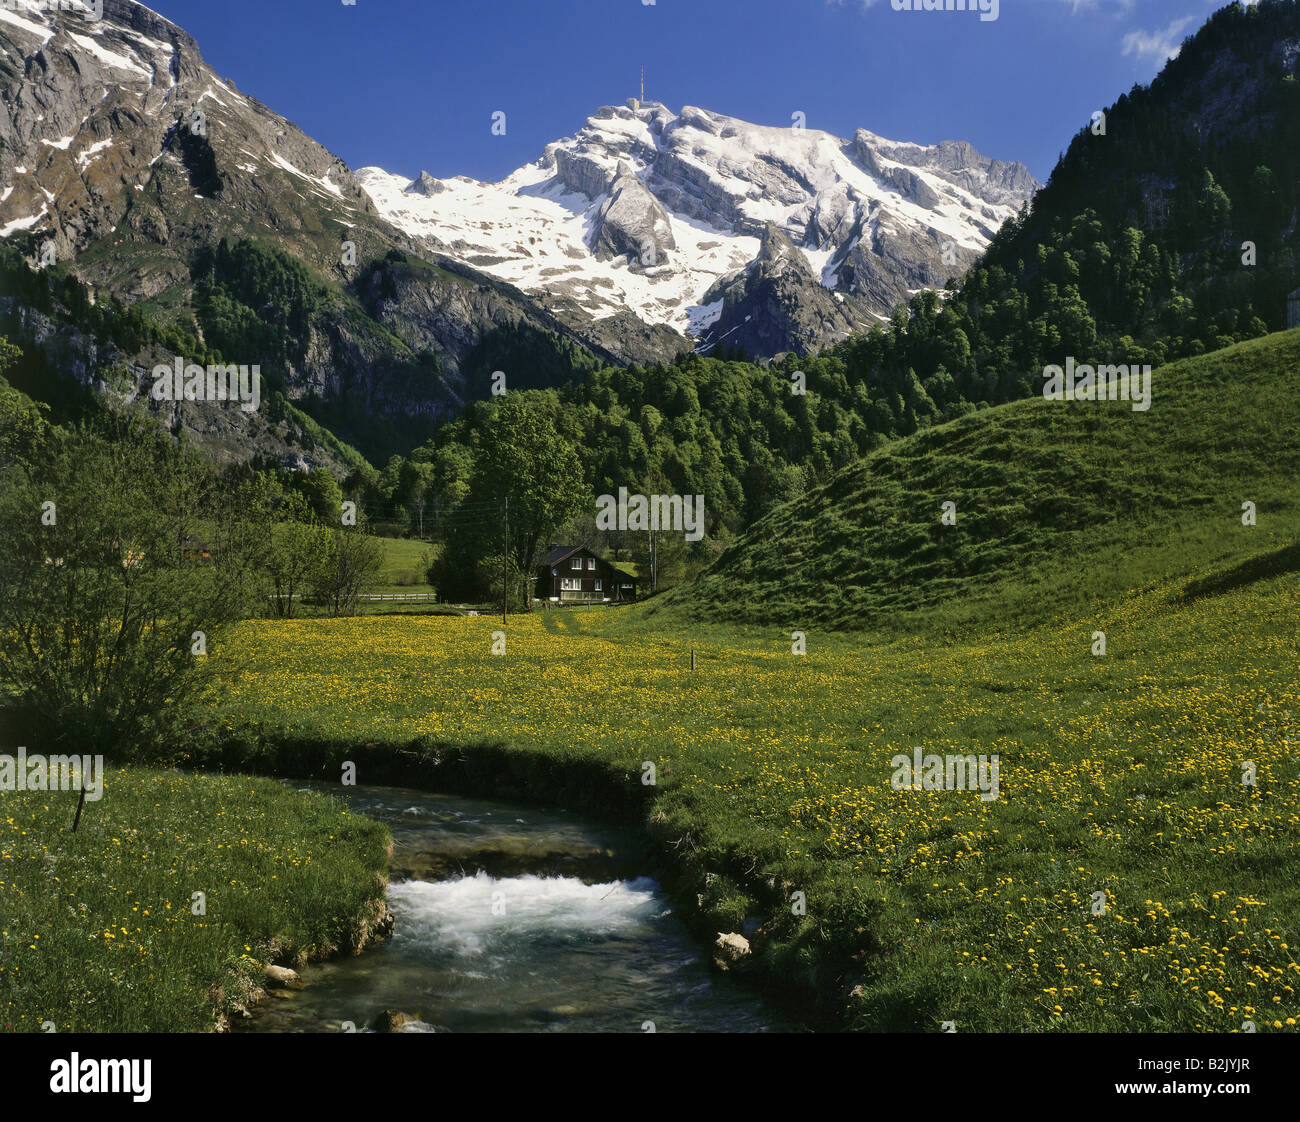 Travel Geography: Appenzell Canton Stock Photos & Appenzell Canton Stock